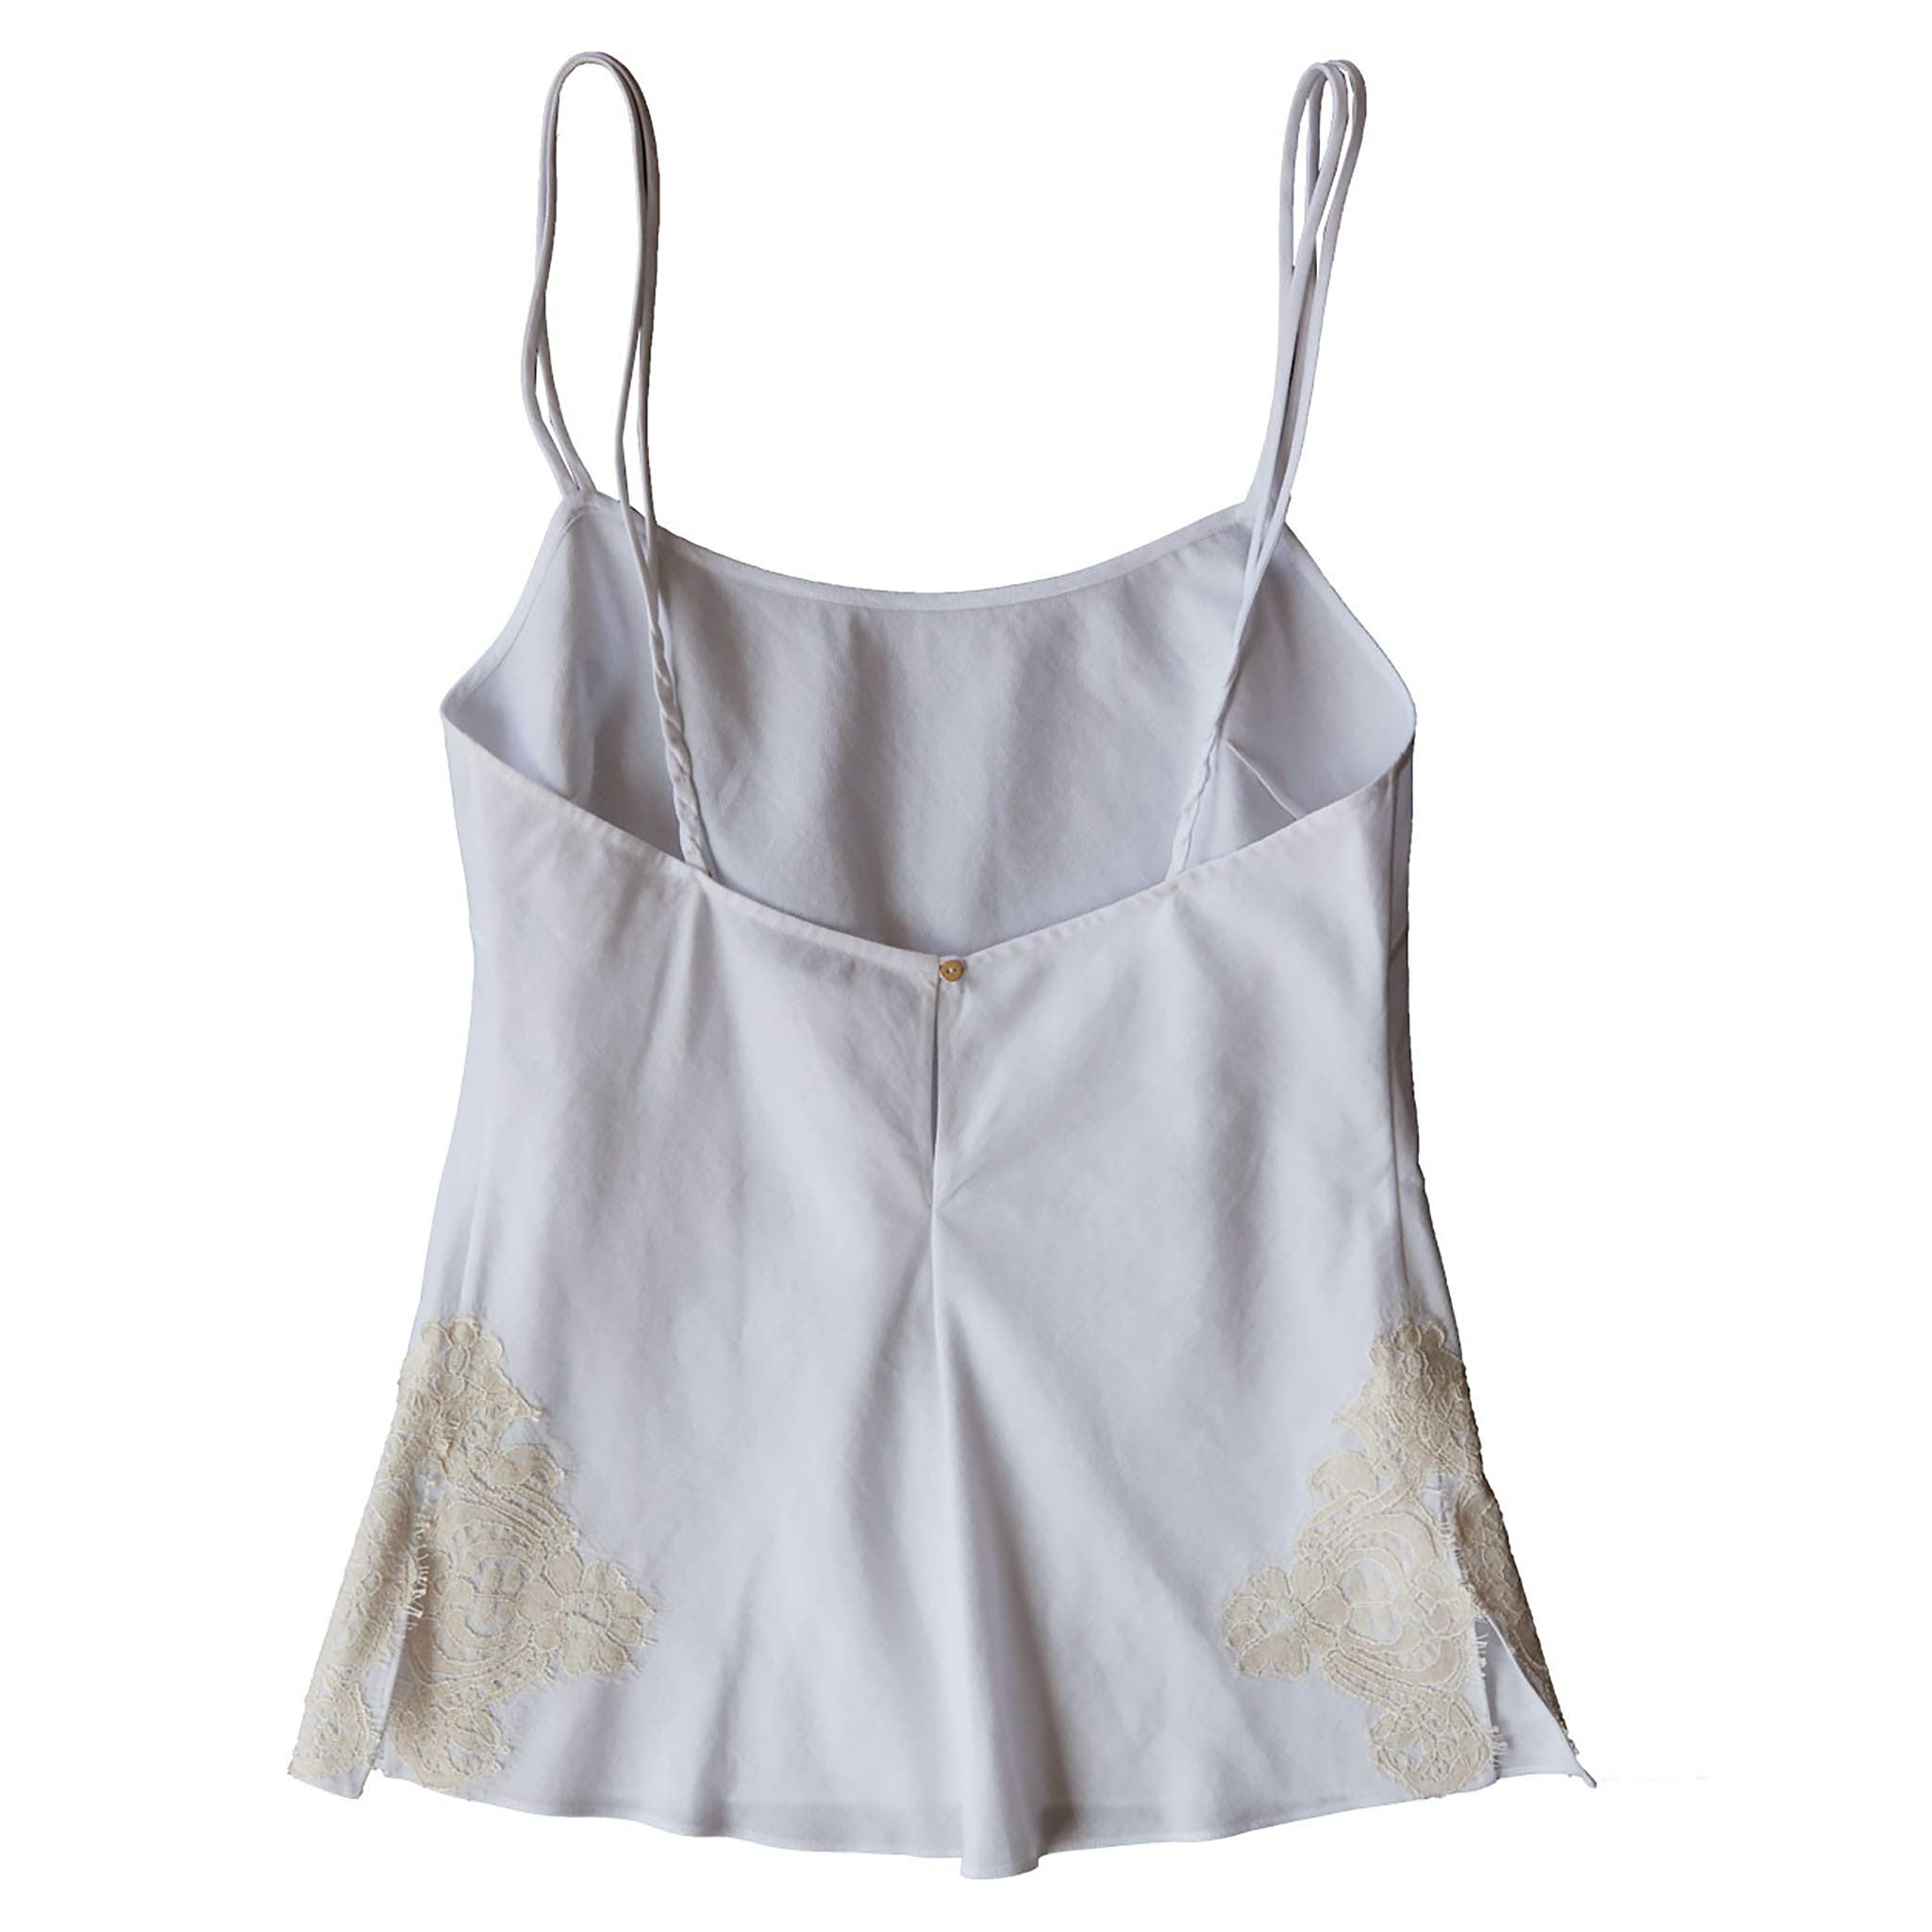 Olwen Camisole in Swiss Cotton Line Pique